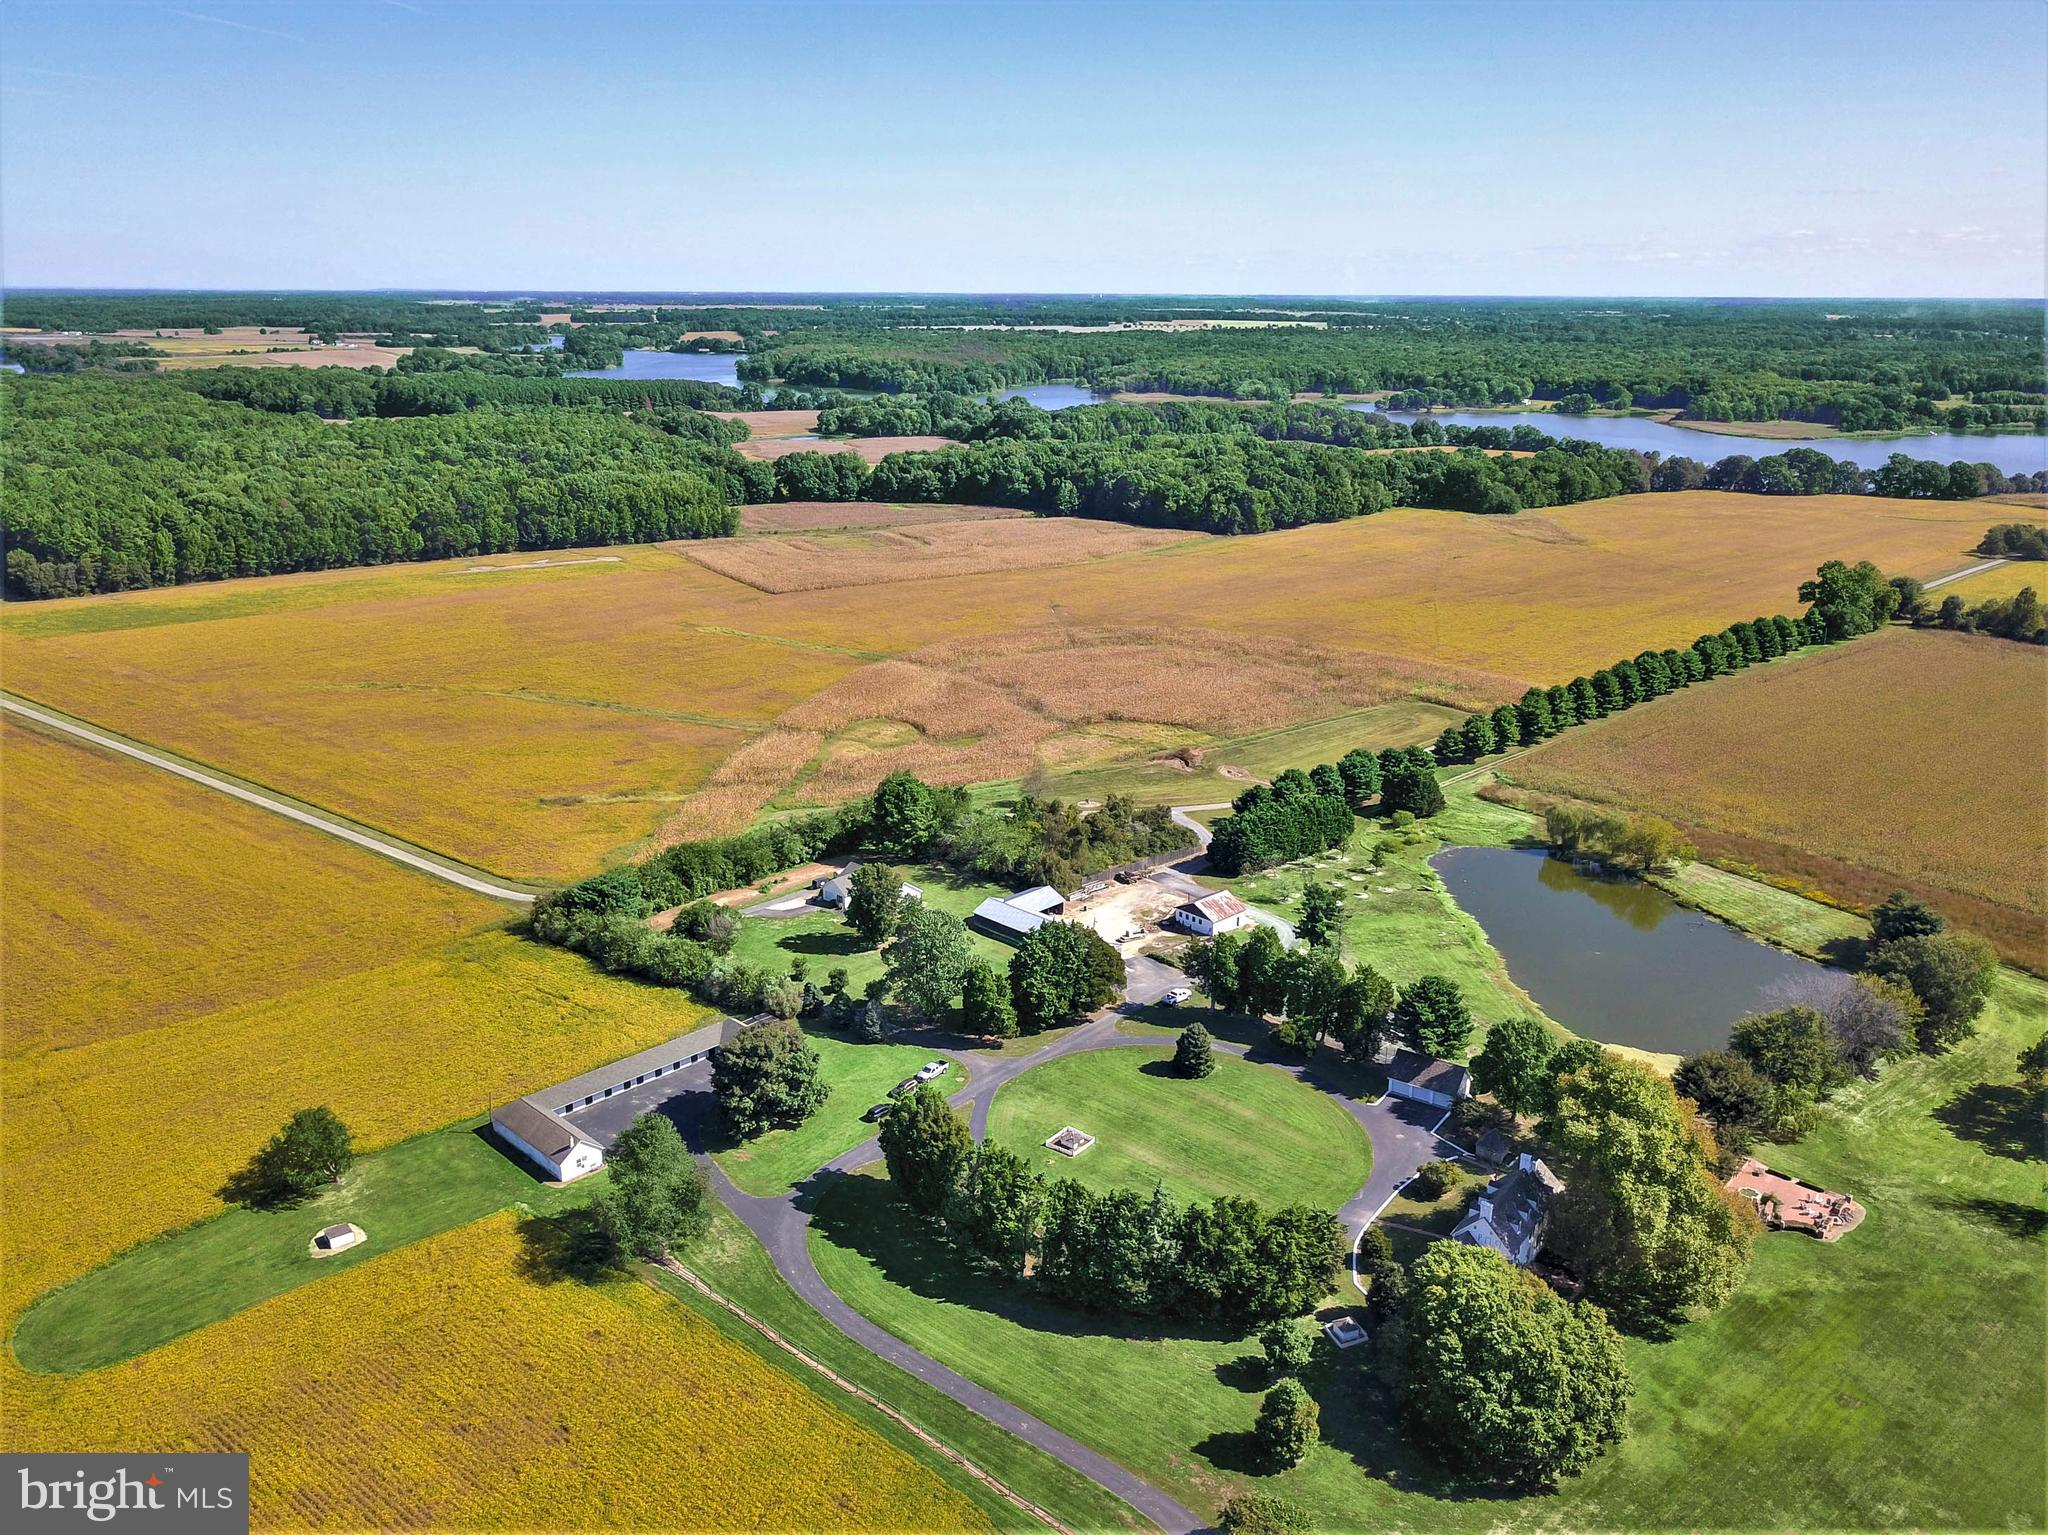 6029 EDESVILLE ROAD, ROCK HALL, Maryland 21661, 6 Bedrooms Bedrooms, ,7 BathroomsBathrooms,Single Family,For Sale,6029 EDESVILLE ROAD,MDKE115838